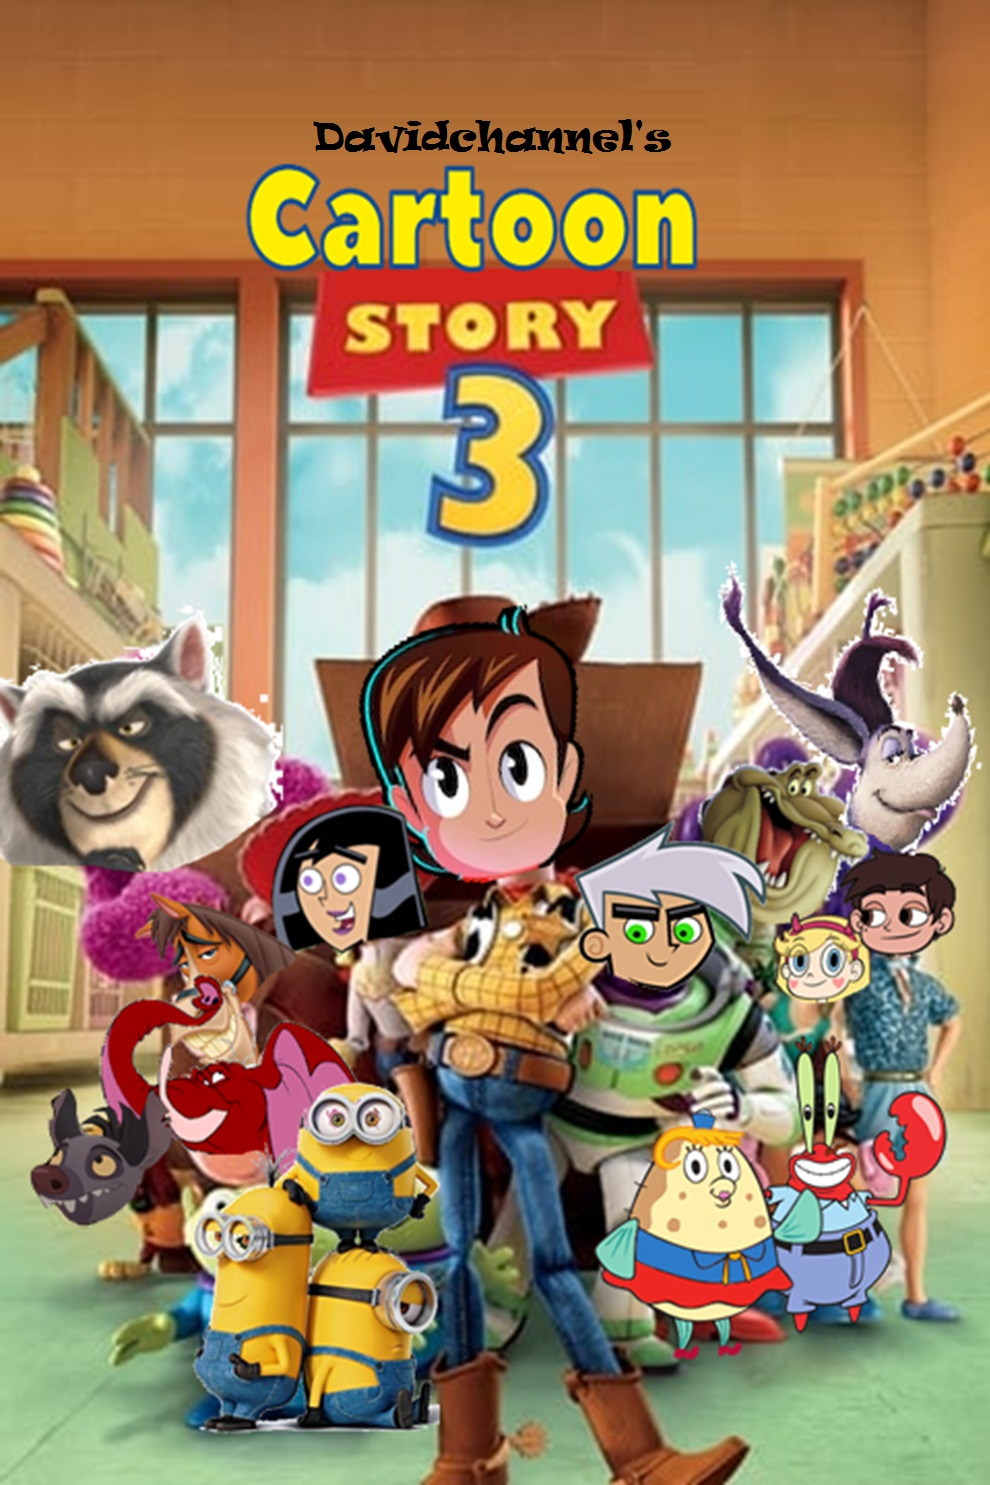 Cartoon Story 3 (2010) (Davidchannel's Version)